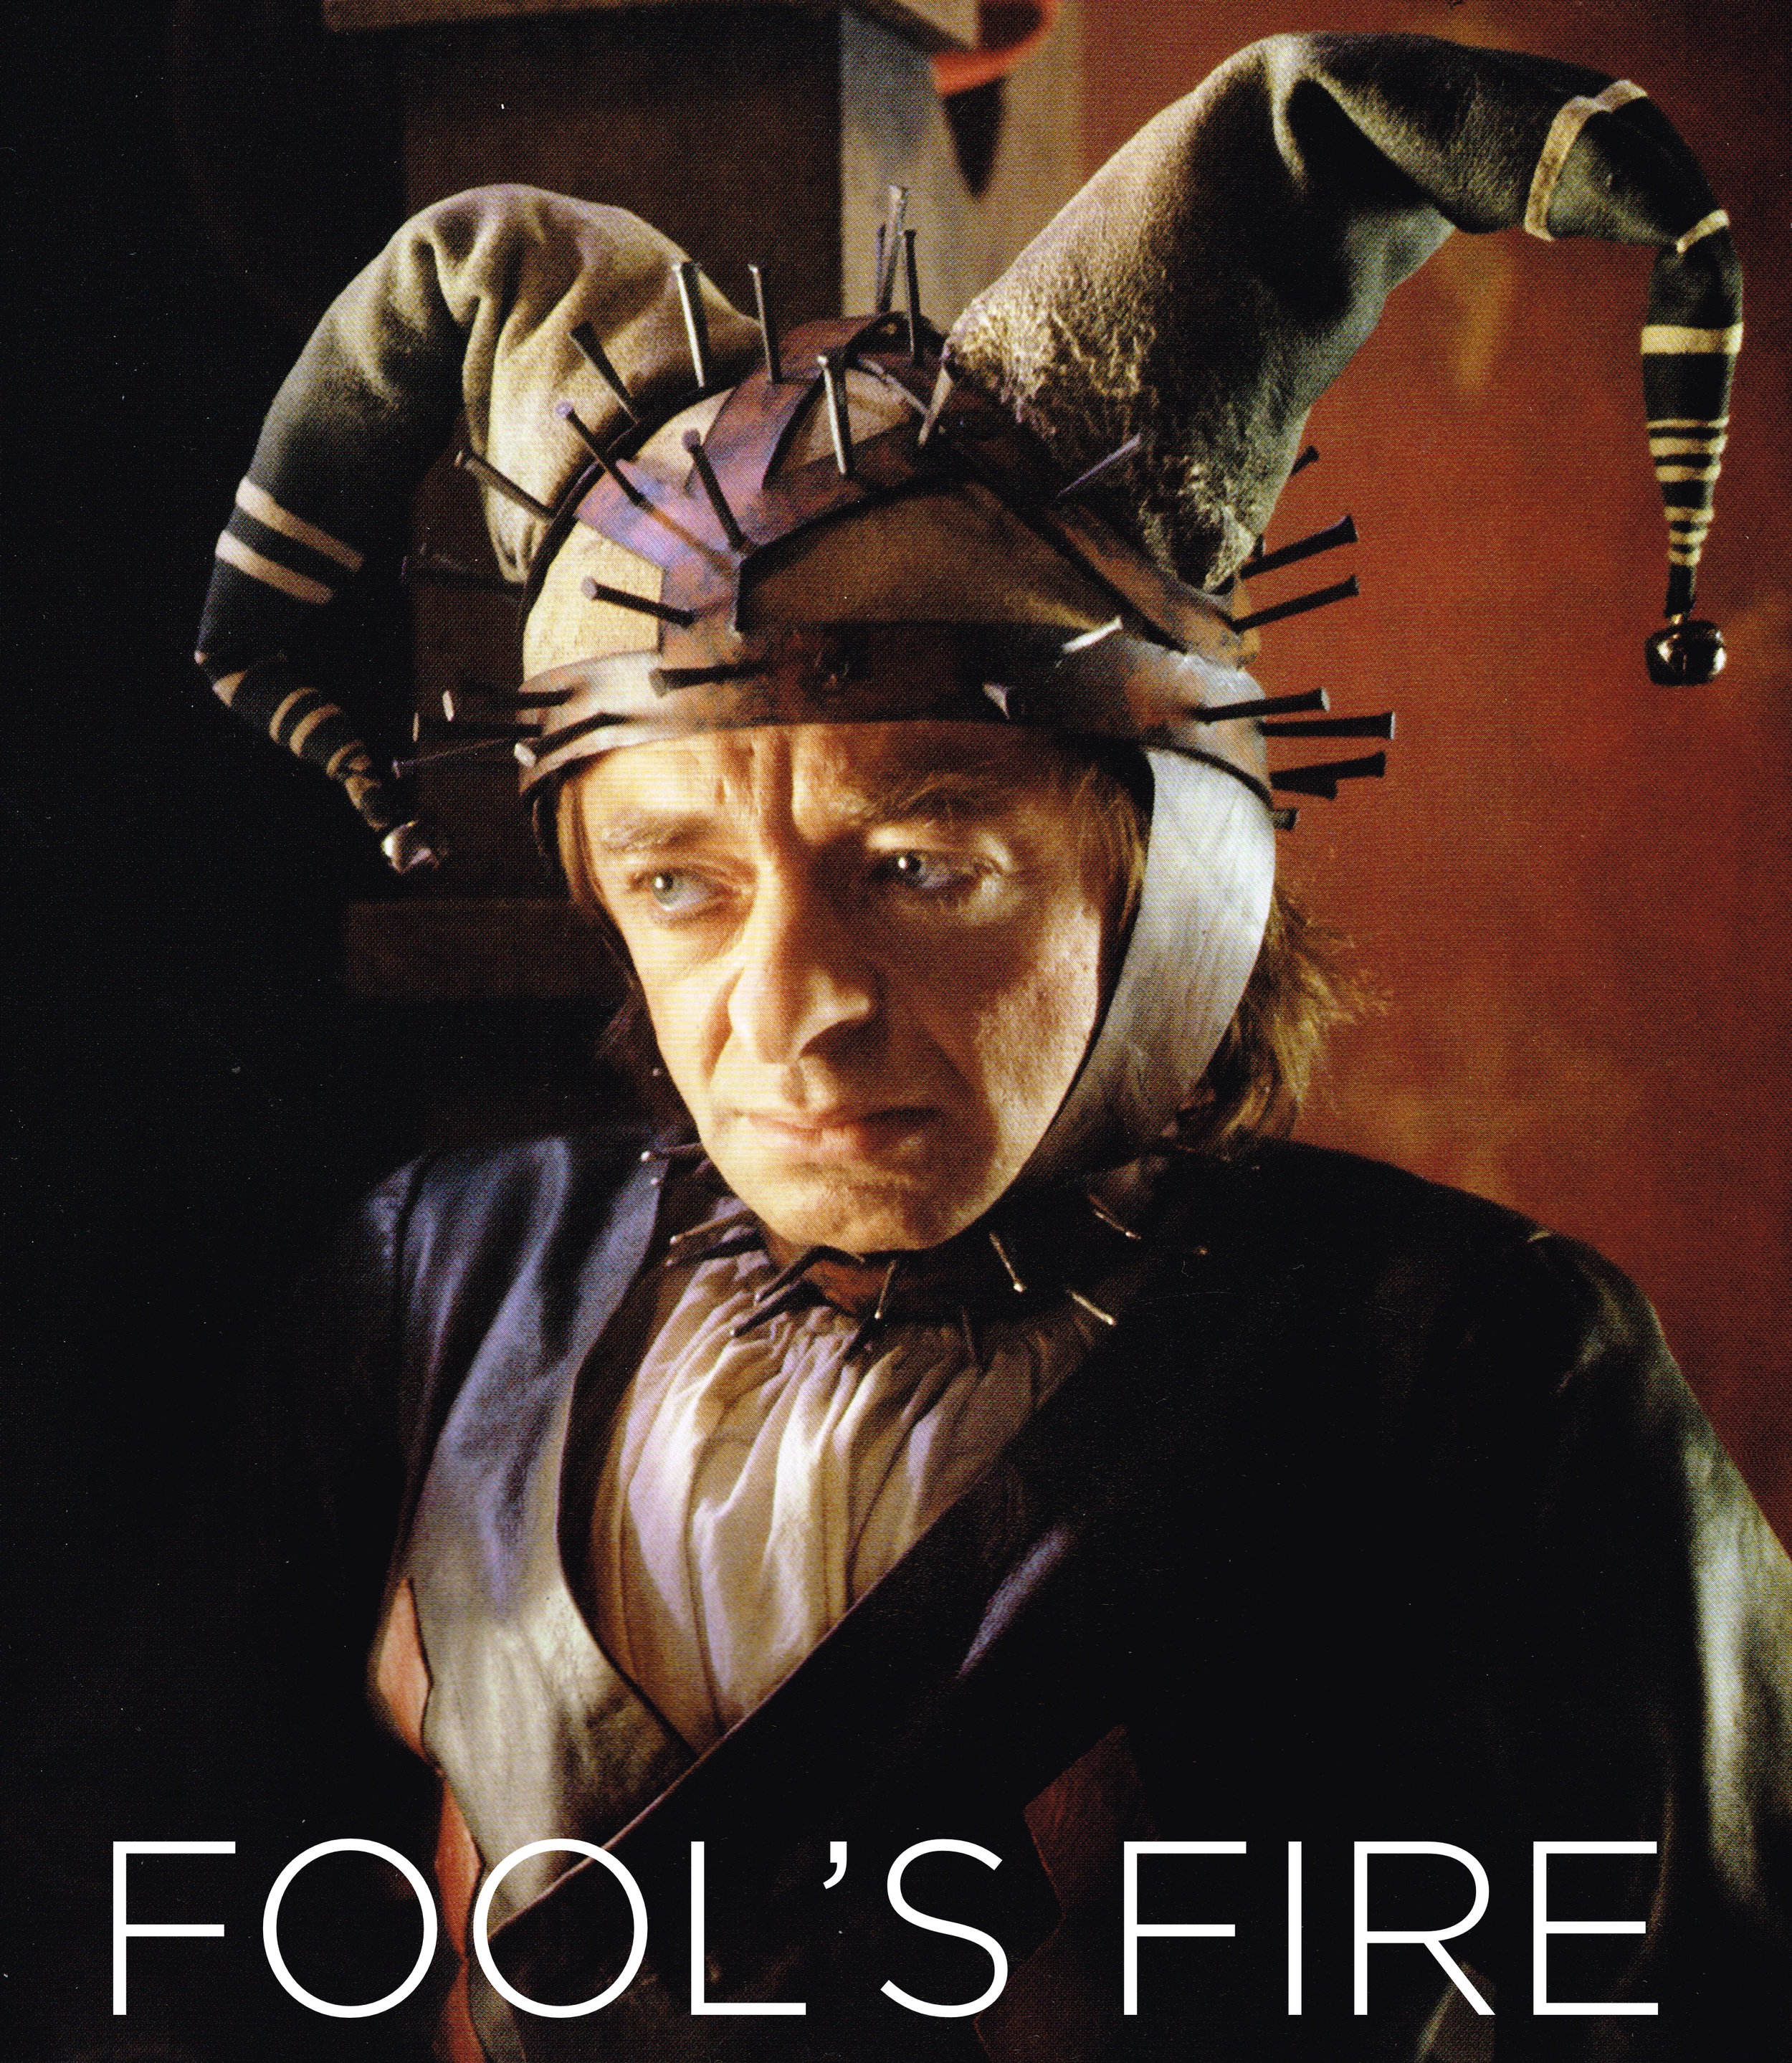 Fool's Fire 1 1 copy.jpg